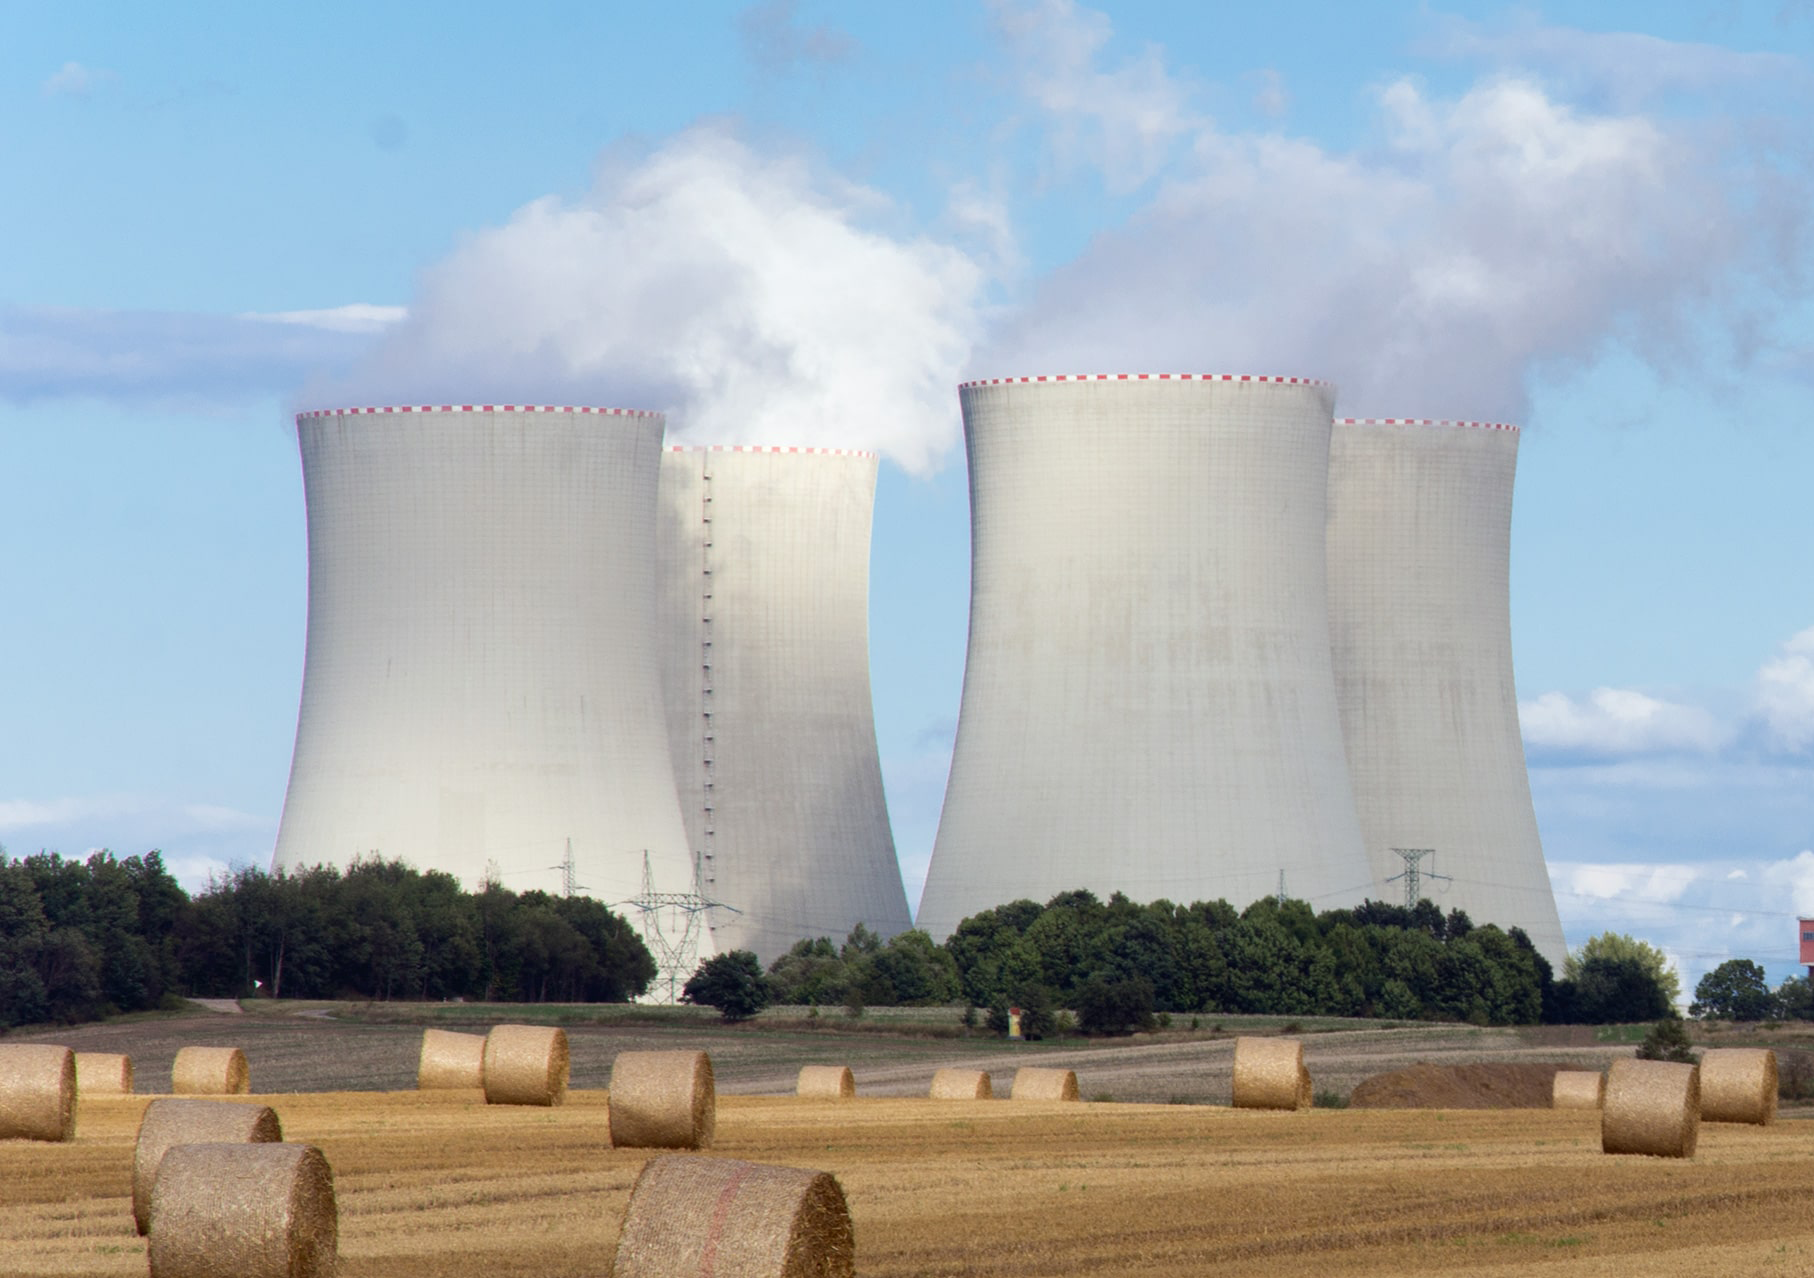 Regulatory compliance nuclear power plants